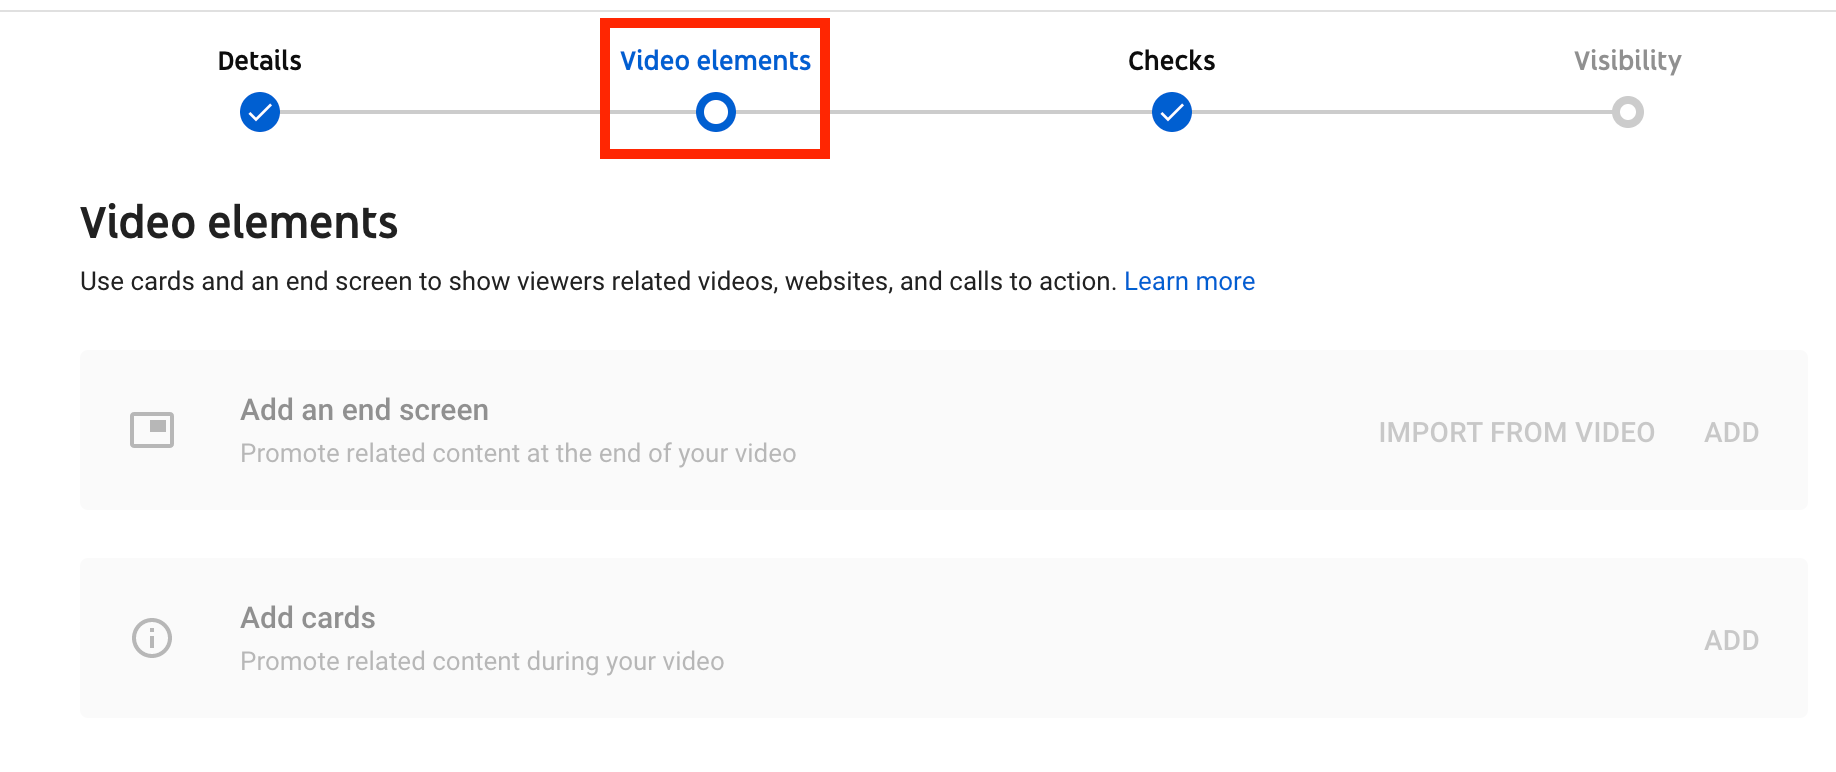 Youtube Creator Studio video editing page with video elements tab highlighted in red